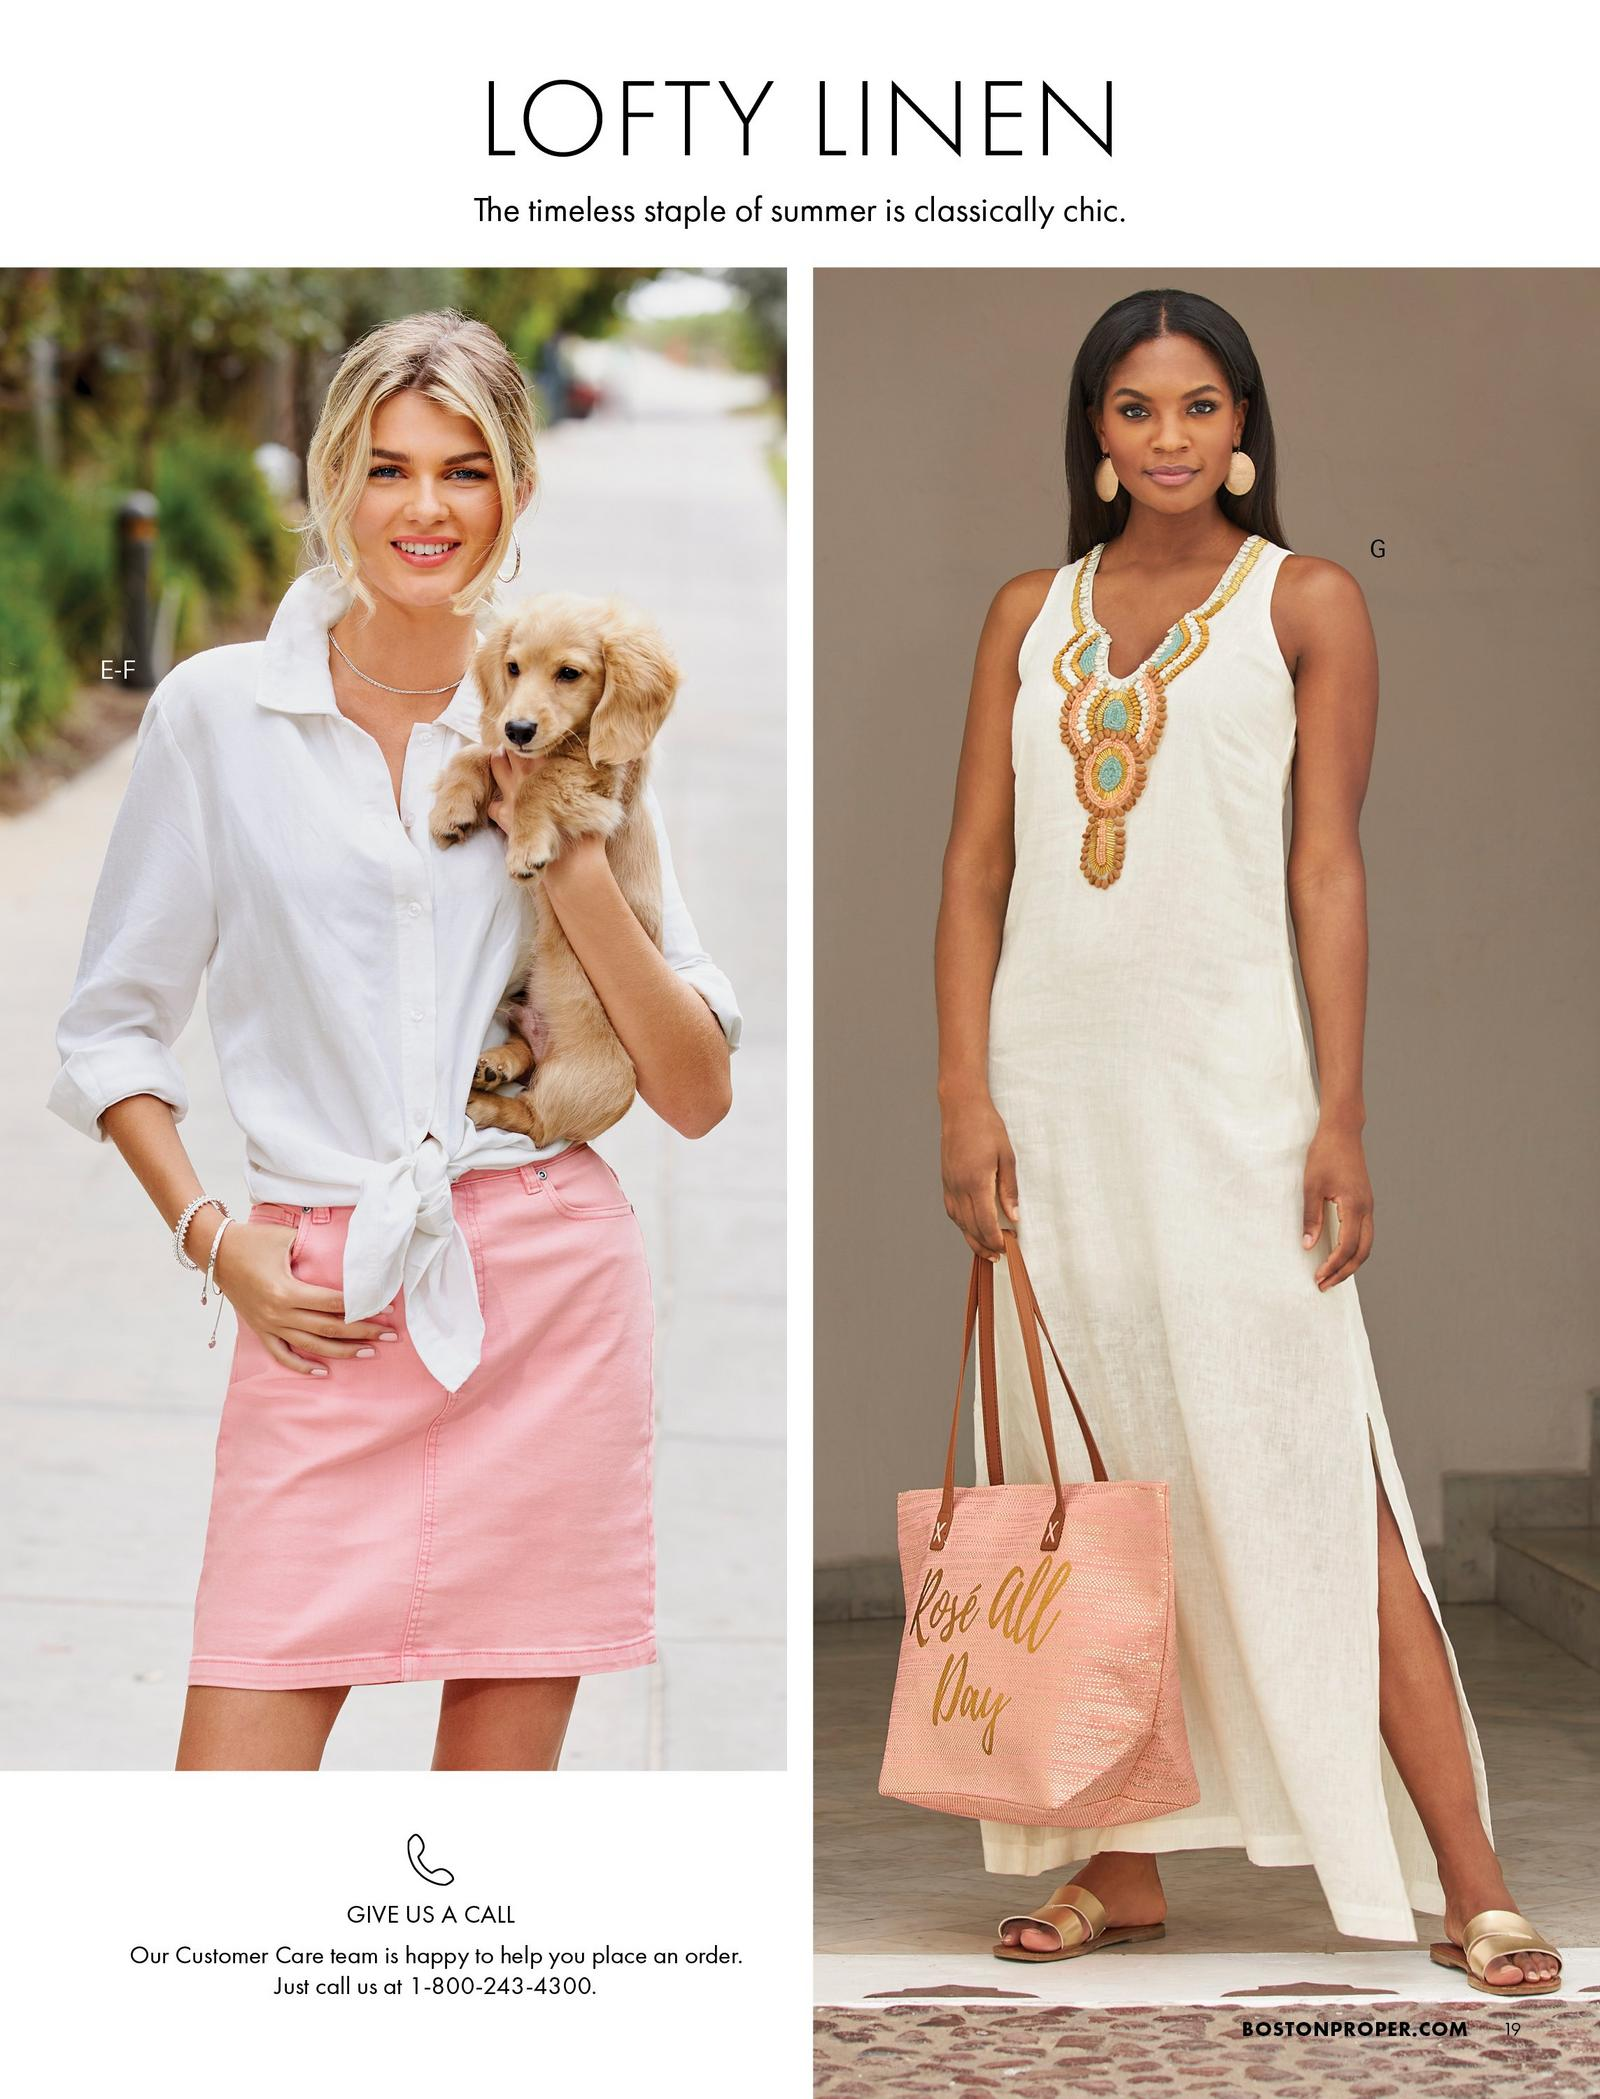 left model wearing a white tie-front button-down linen top and pink denim skort. right model wearing a white sleeveless linen maxi dress with jewel embellishments, gold strappy sandals, and holding a pink tote bag.